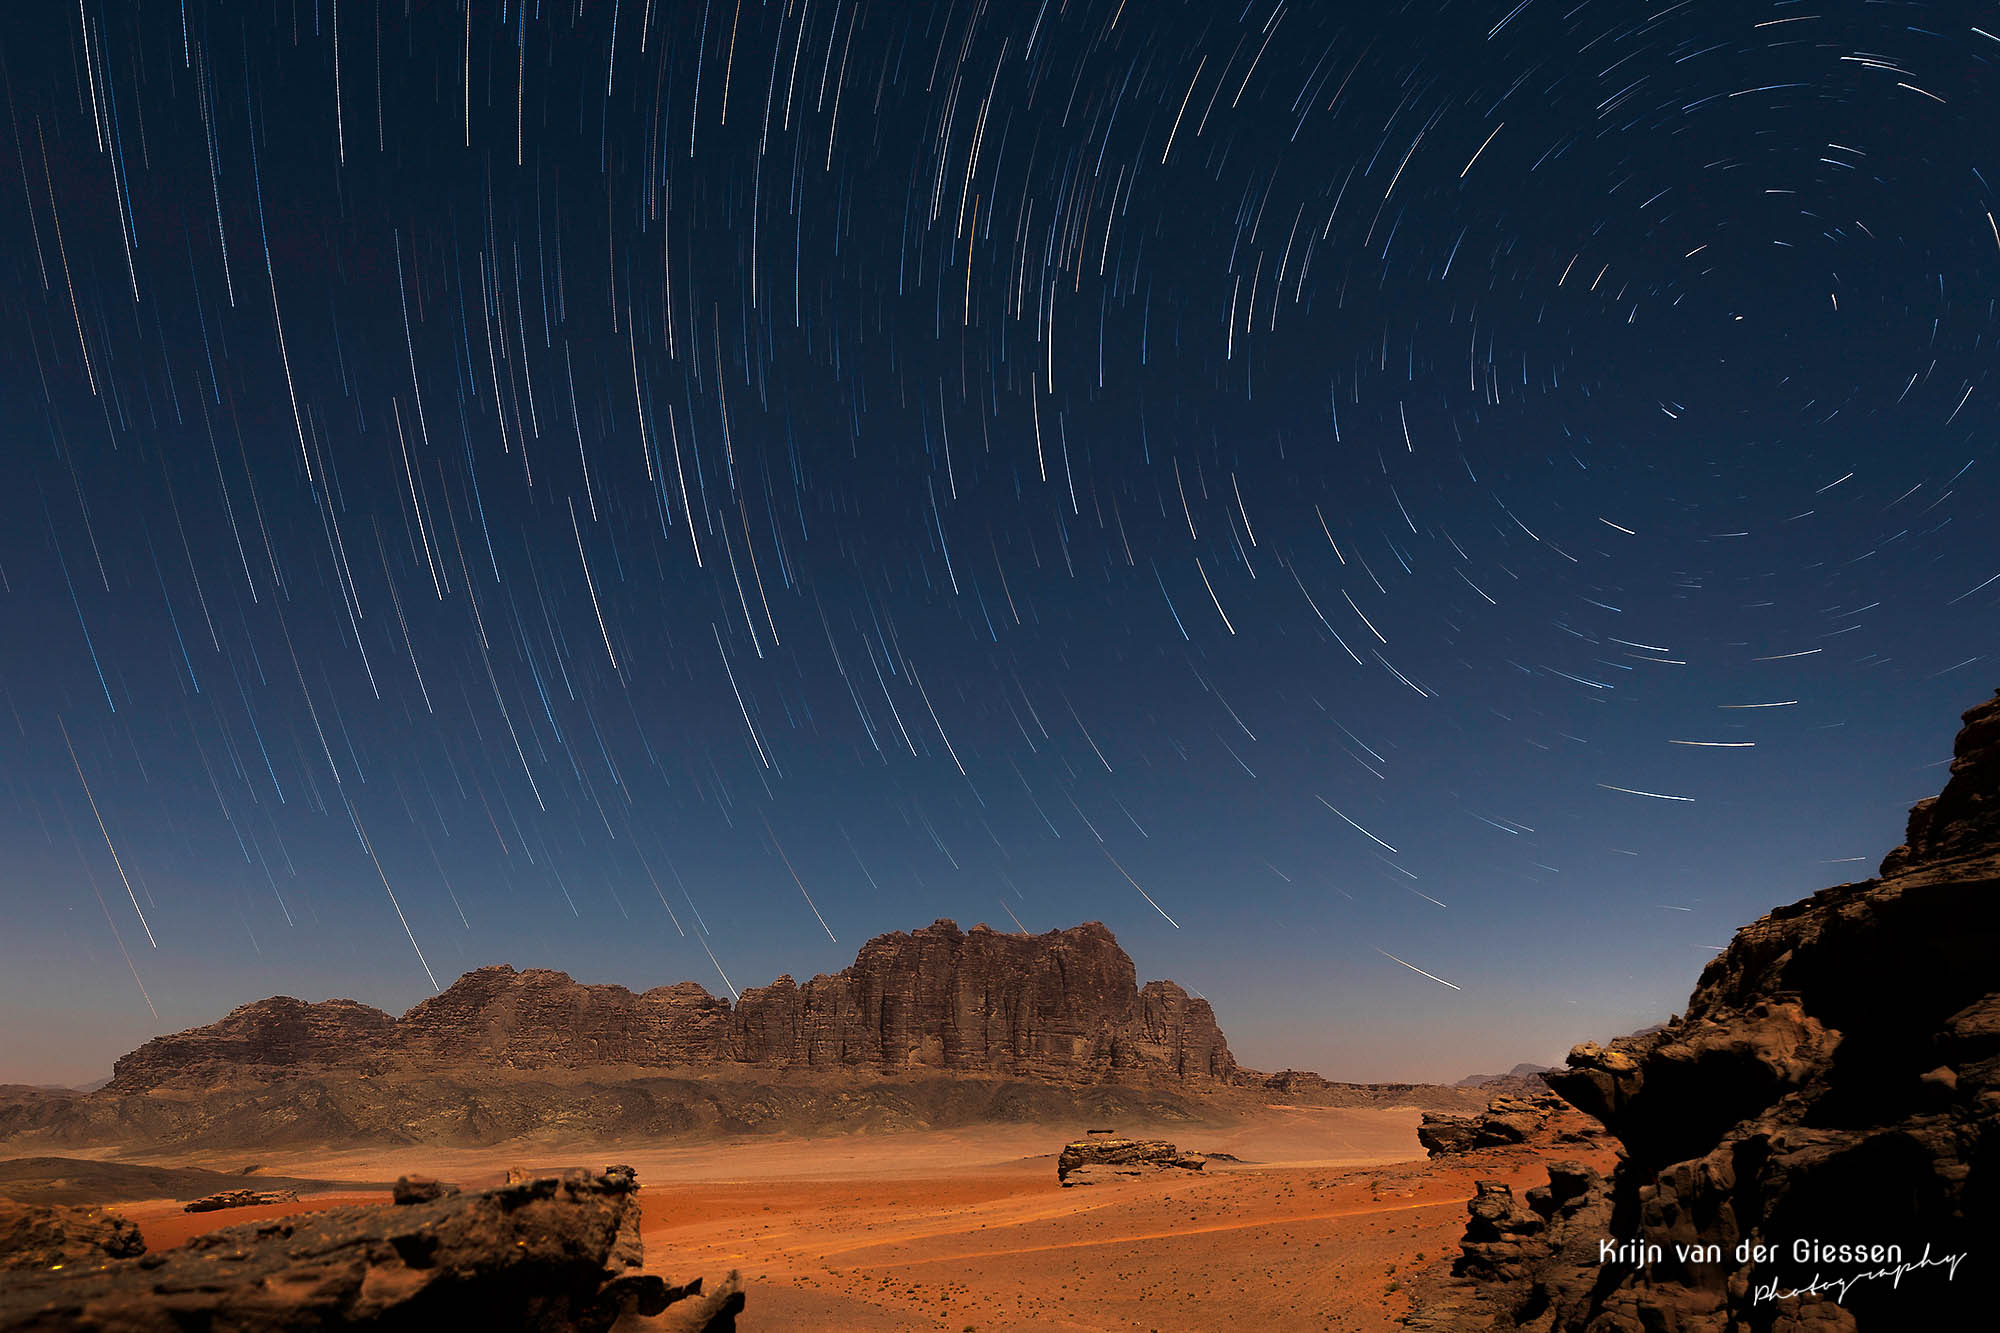 Star Trails over the Wadi Rum Desert in Jordan copyright by Krijn van der Giessen Photography